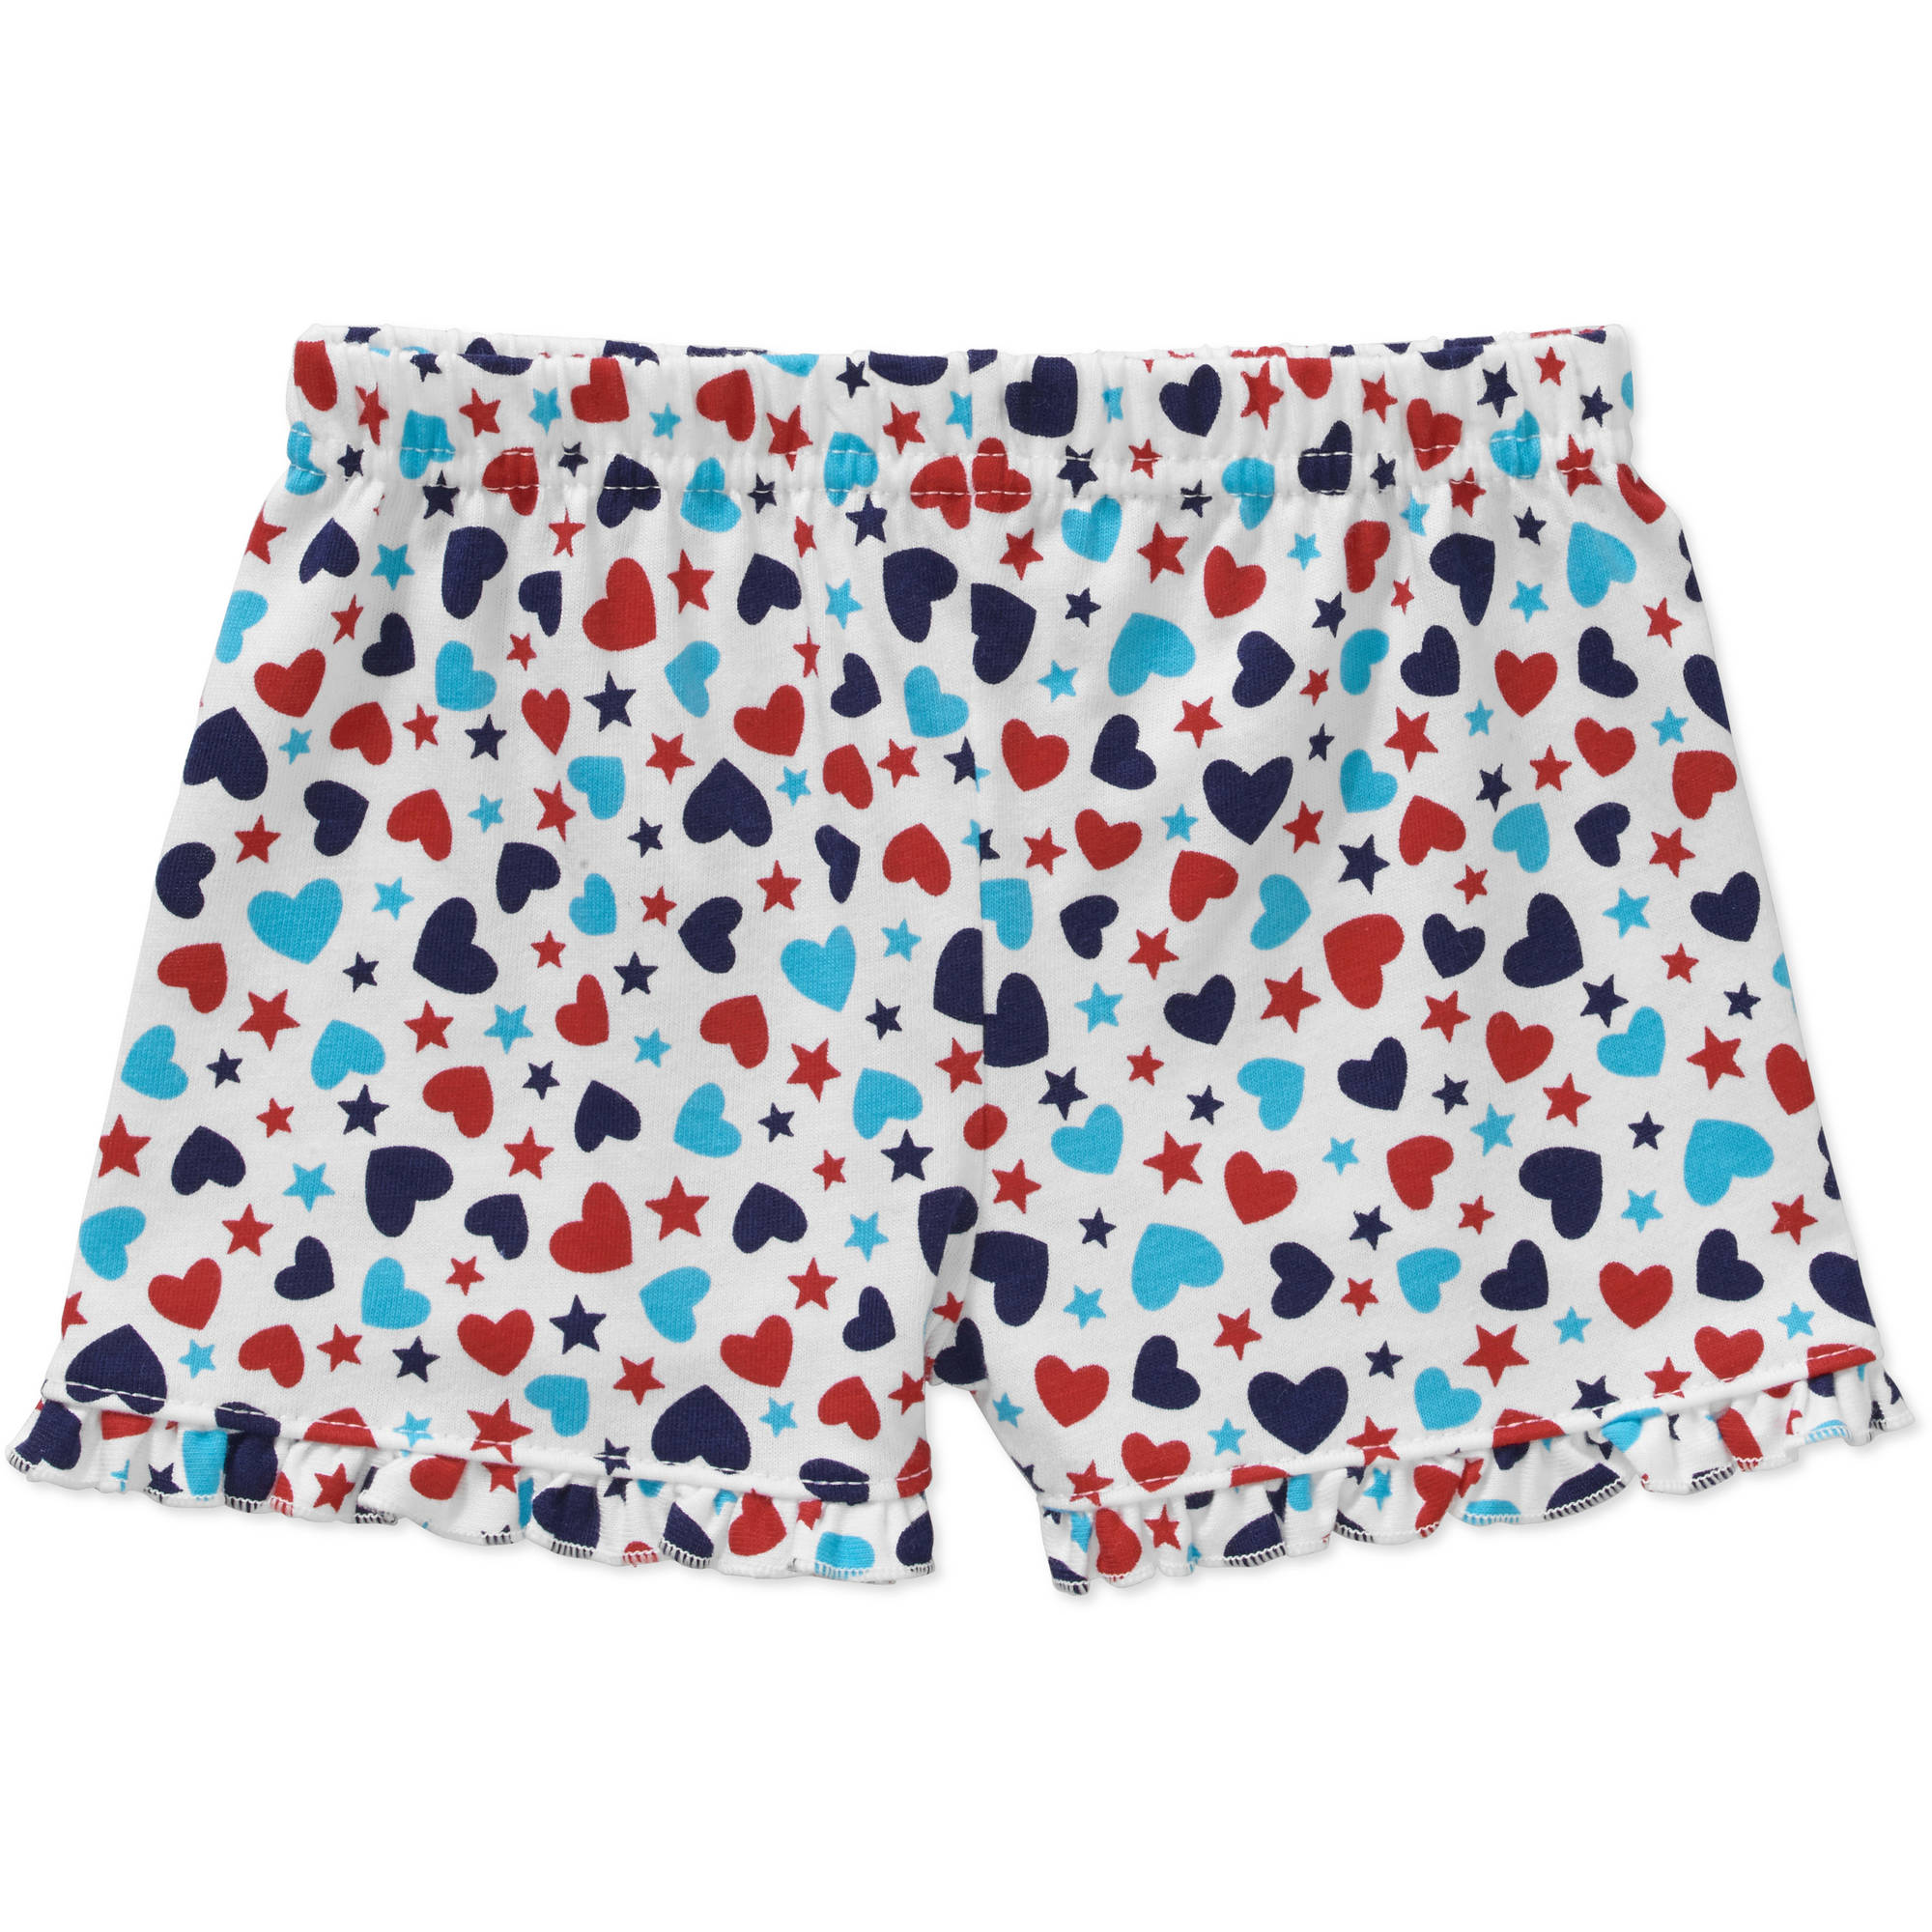 Garanimals Newborn Baby Girl Print Ruffle Shorts